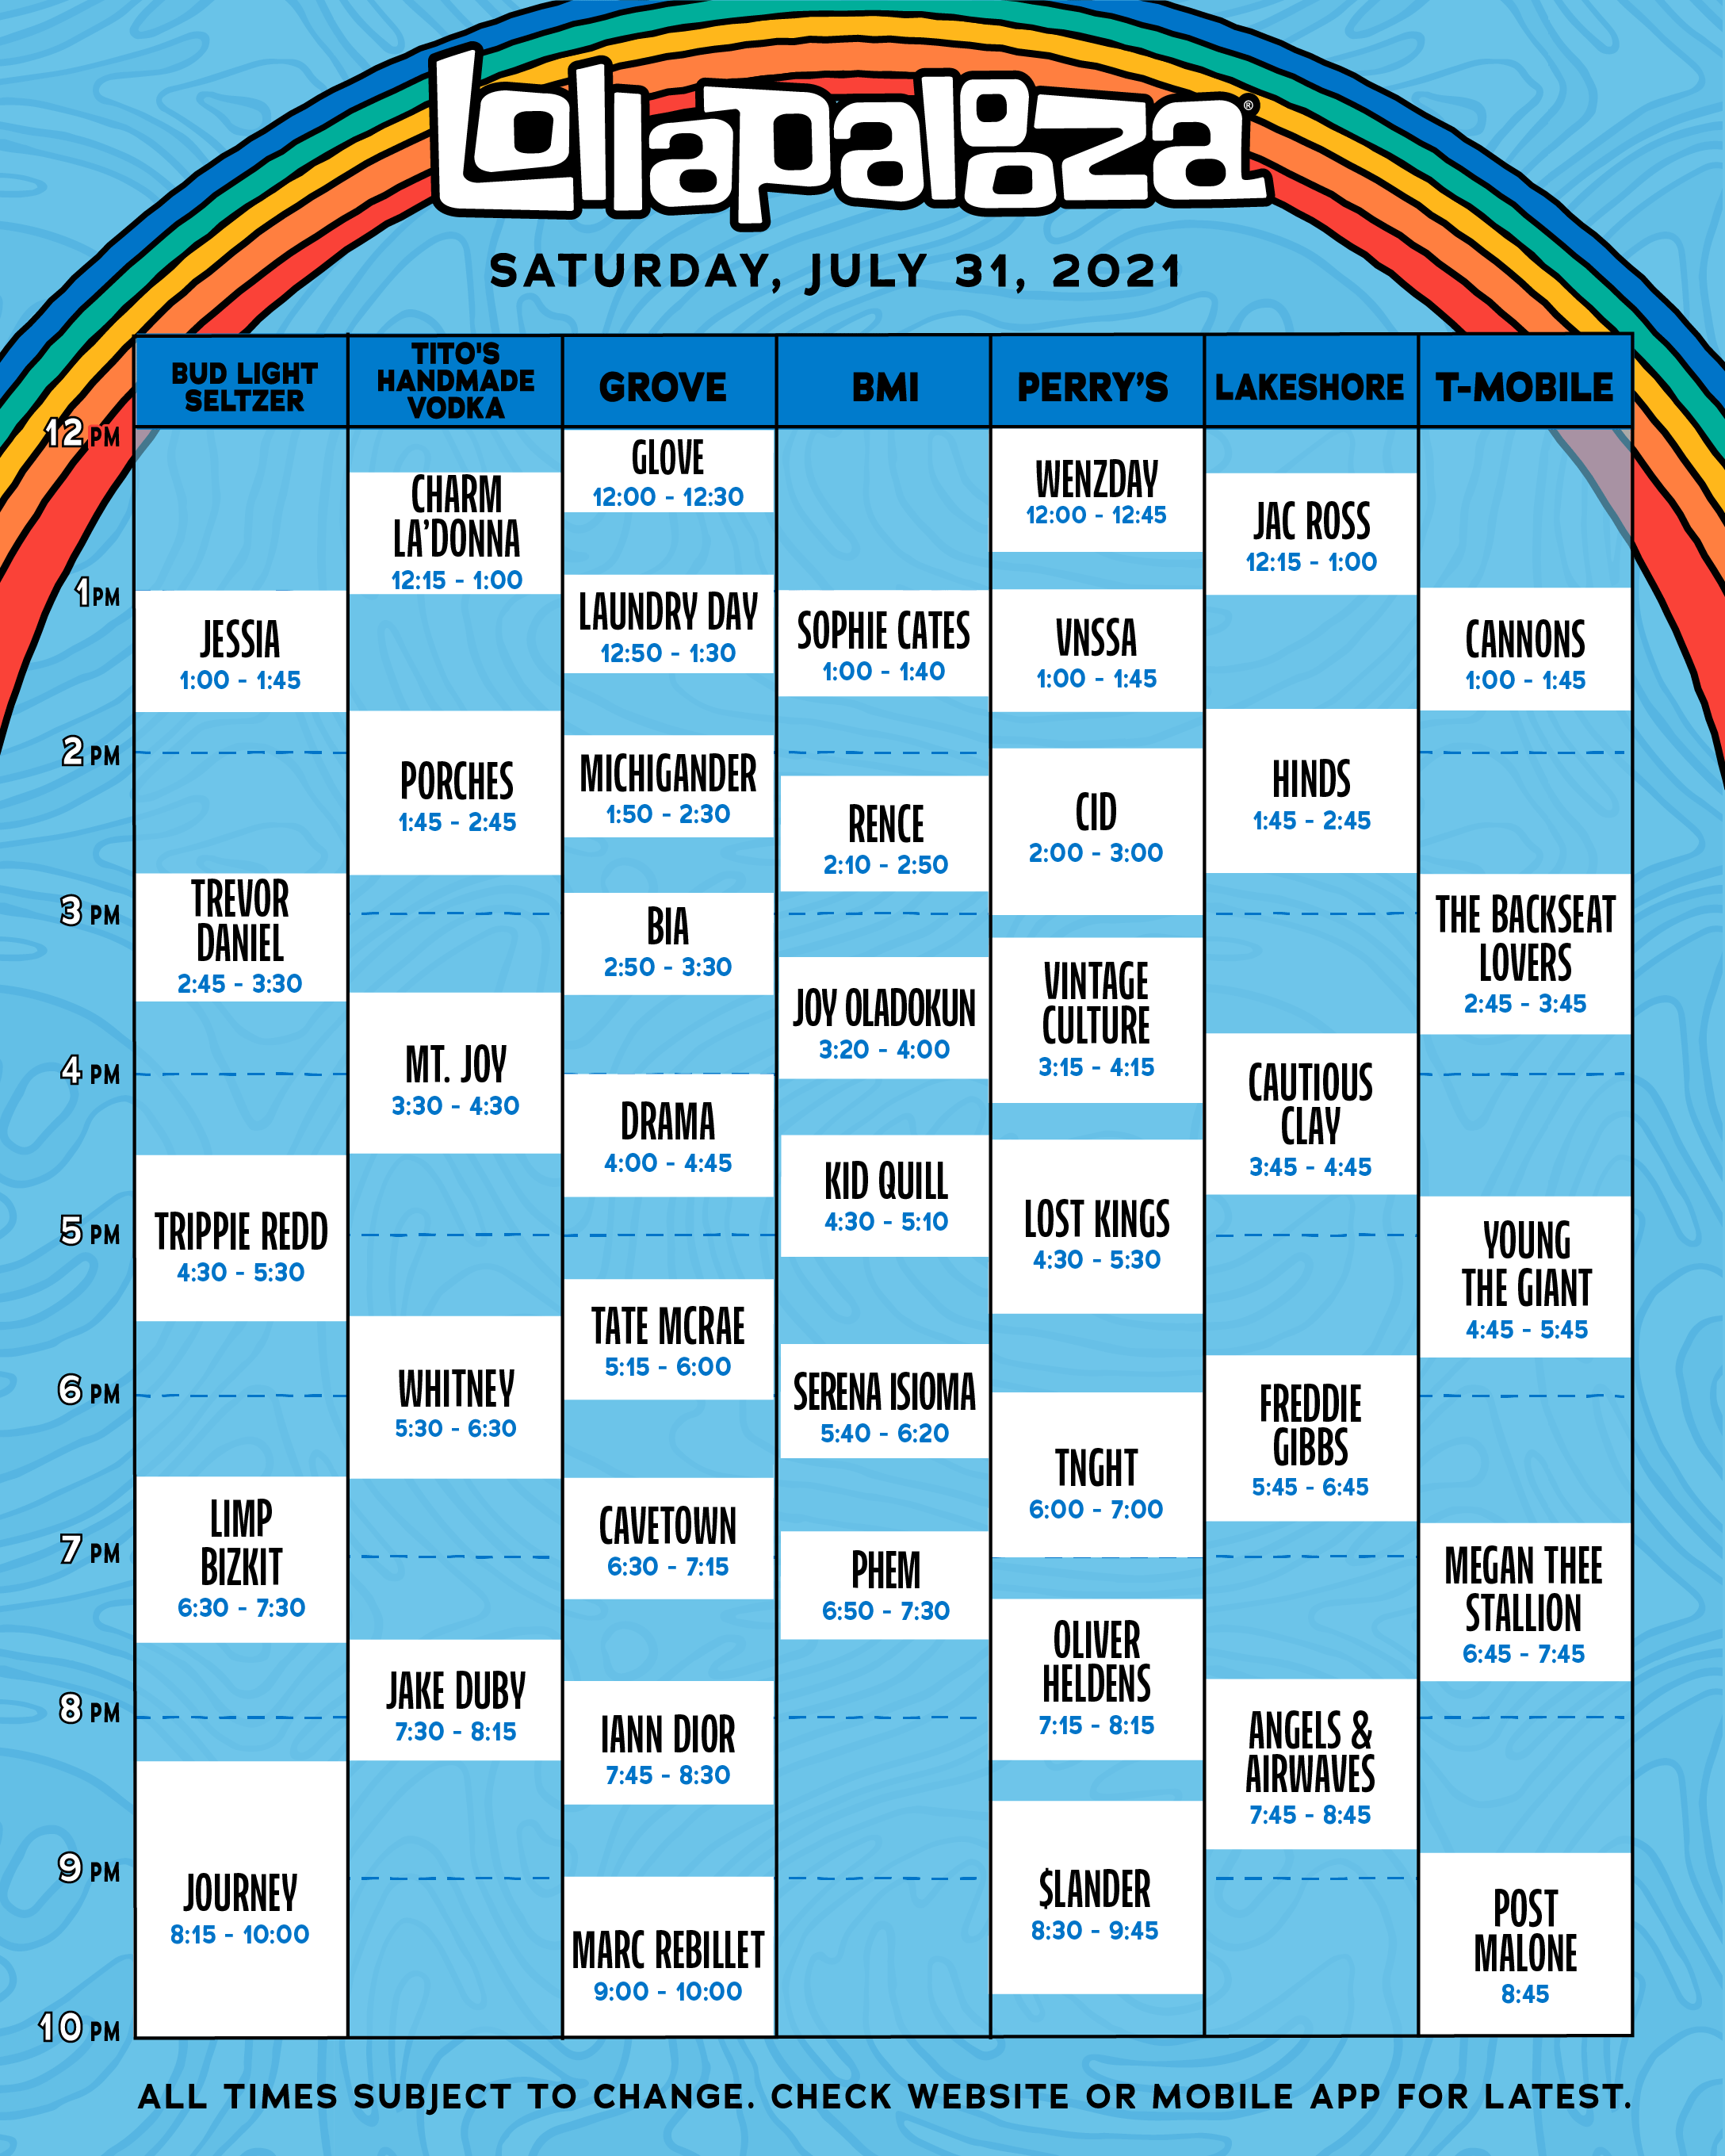 Lollapalooza Full 2021 Schedule Announced! 4